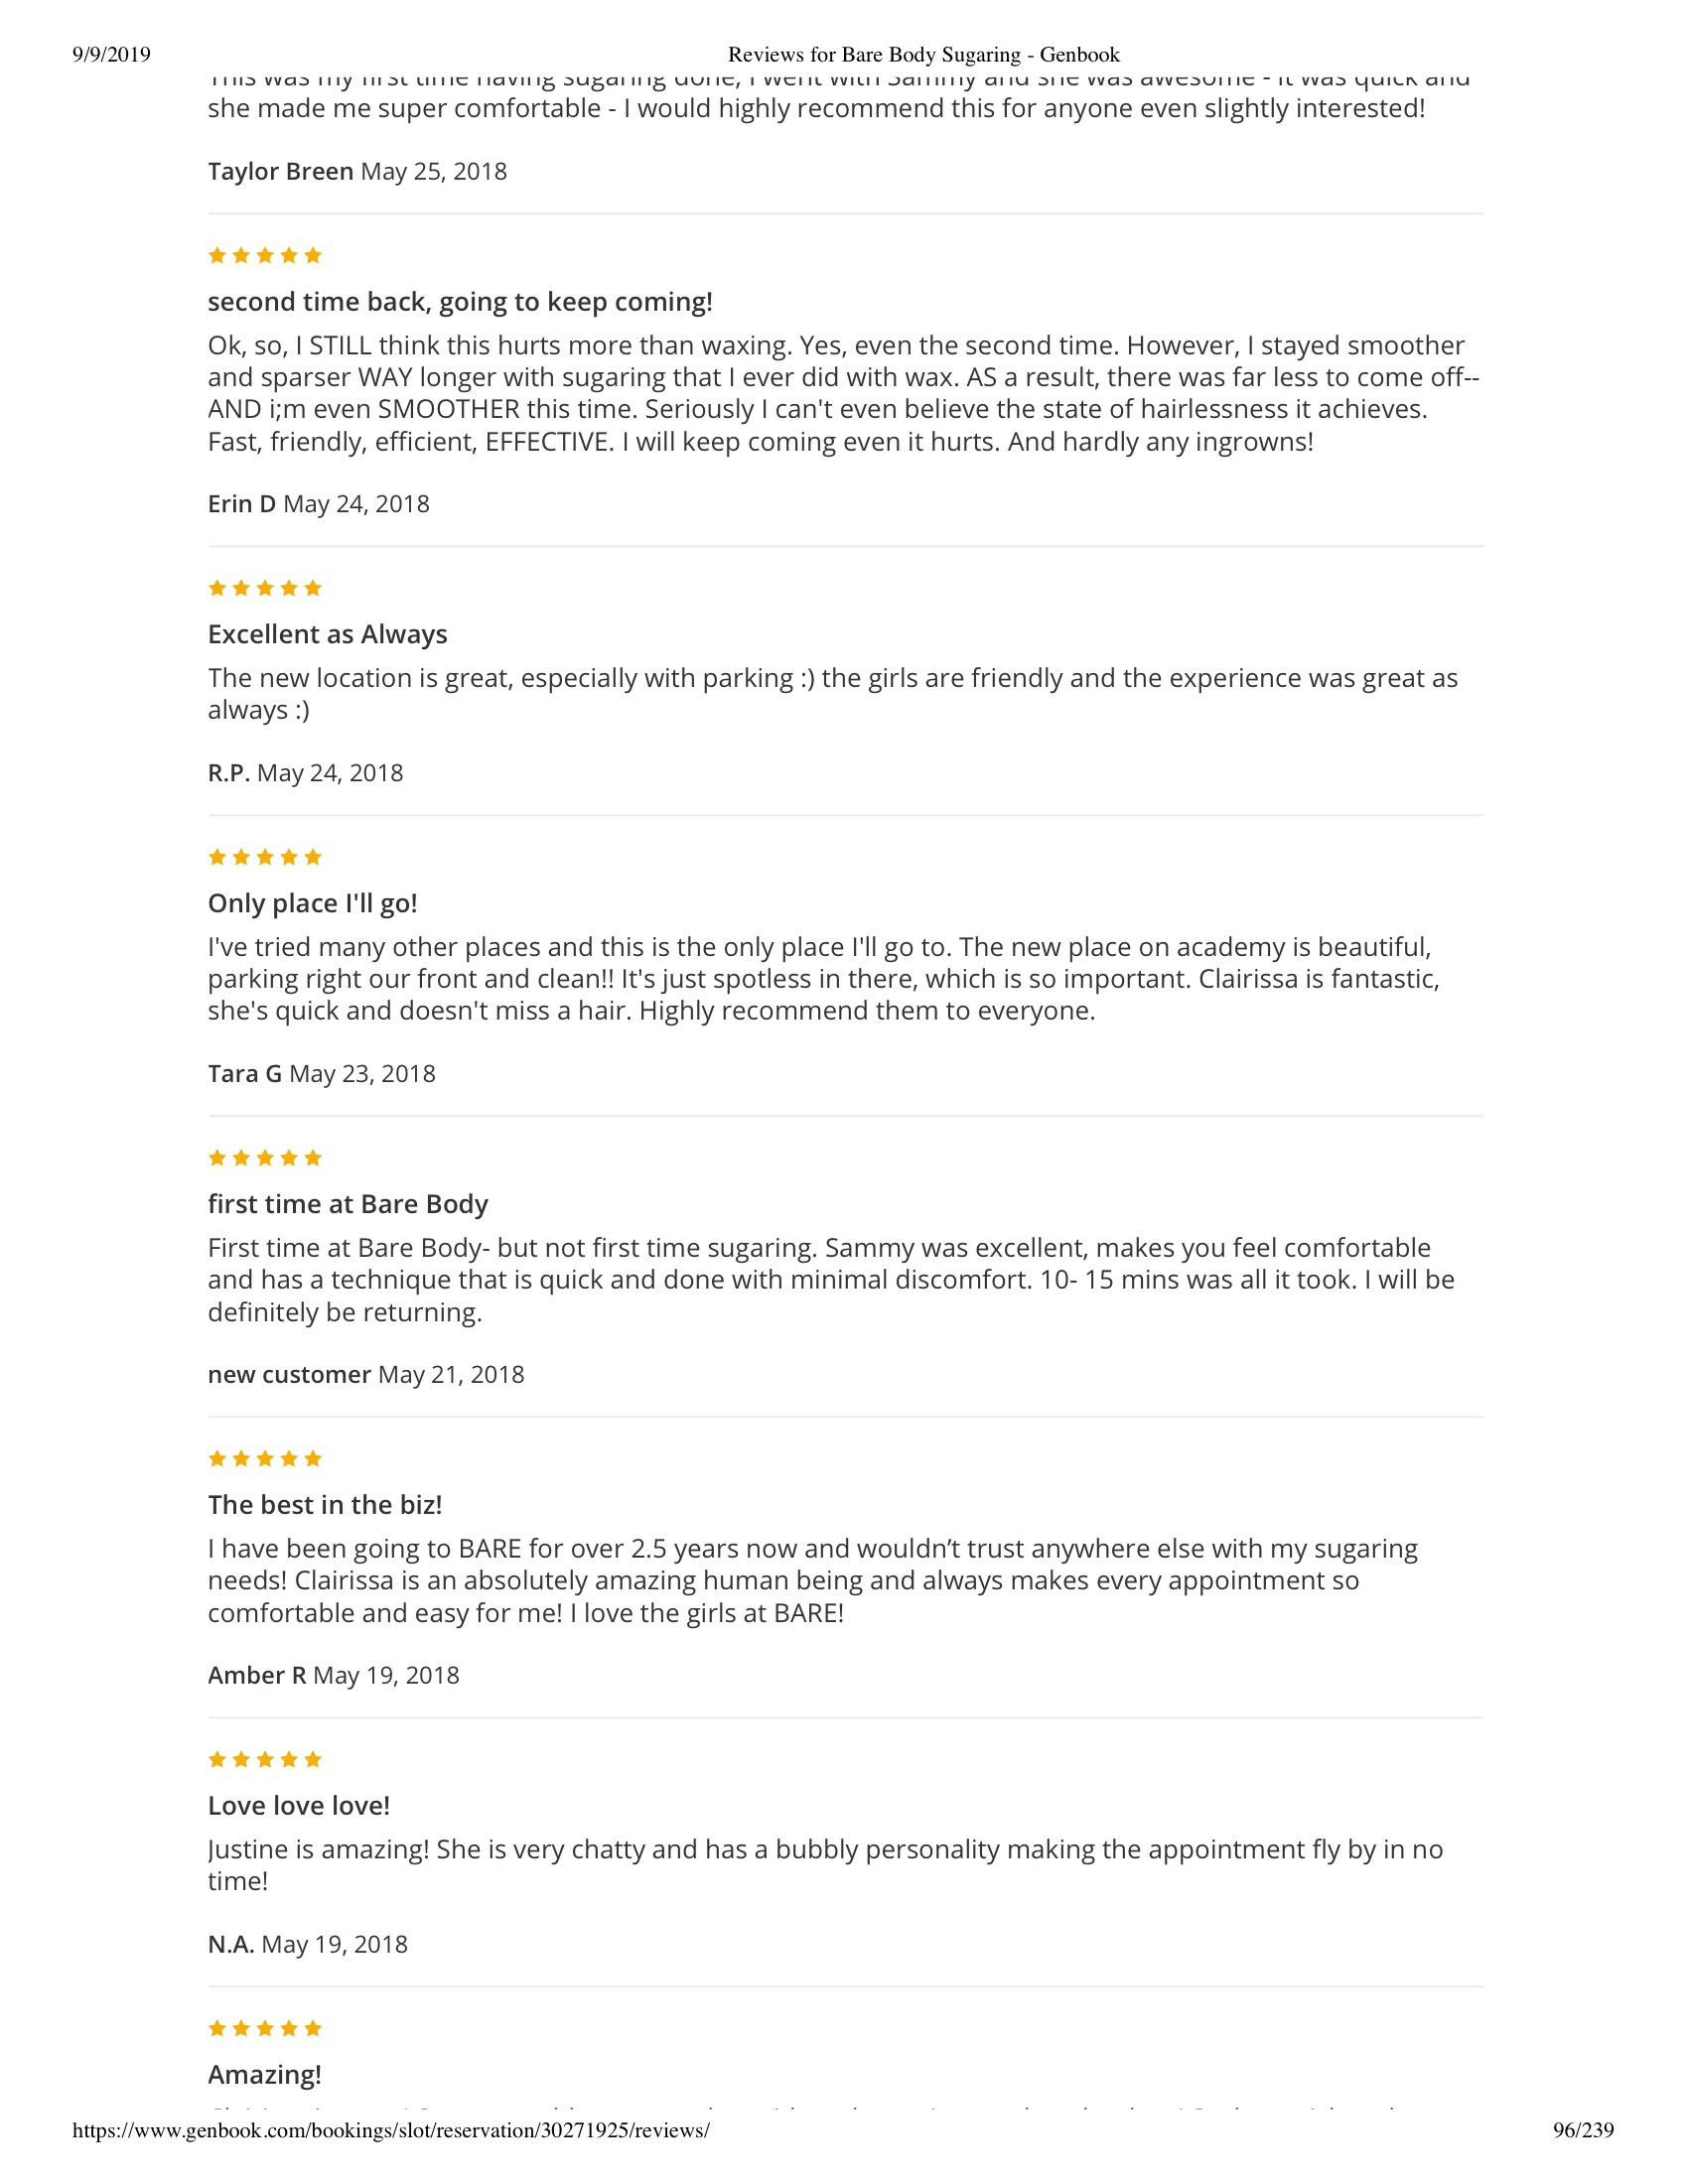 Reviews for Bare Body Sugaring - Genbook 96.jpeg